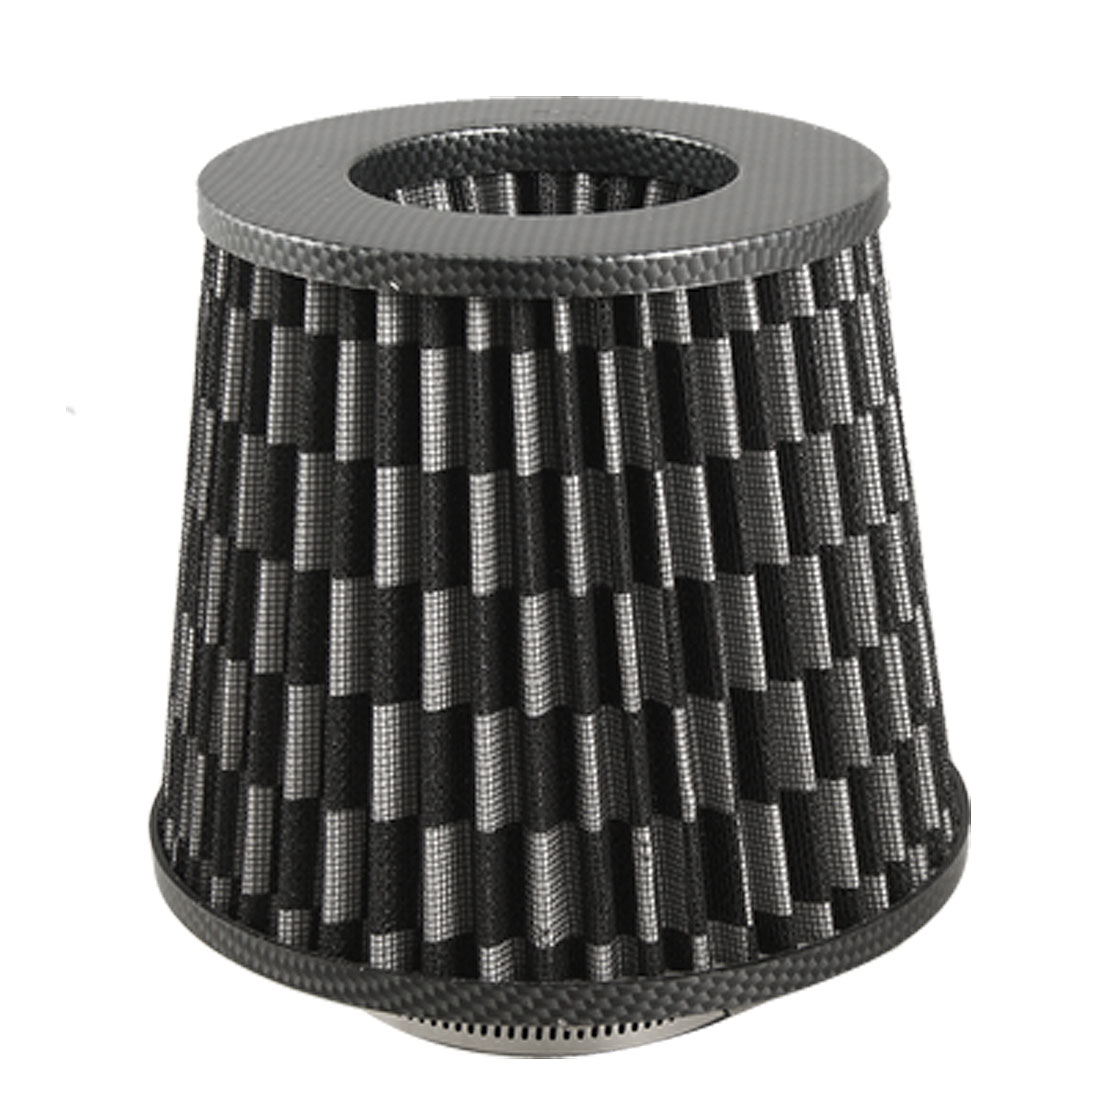 3 Universal High Flow Carbon Fiber Dry Cone Cold Air Intake Filter Black(China (Mainland))